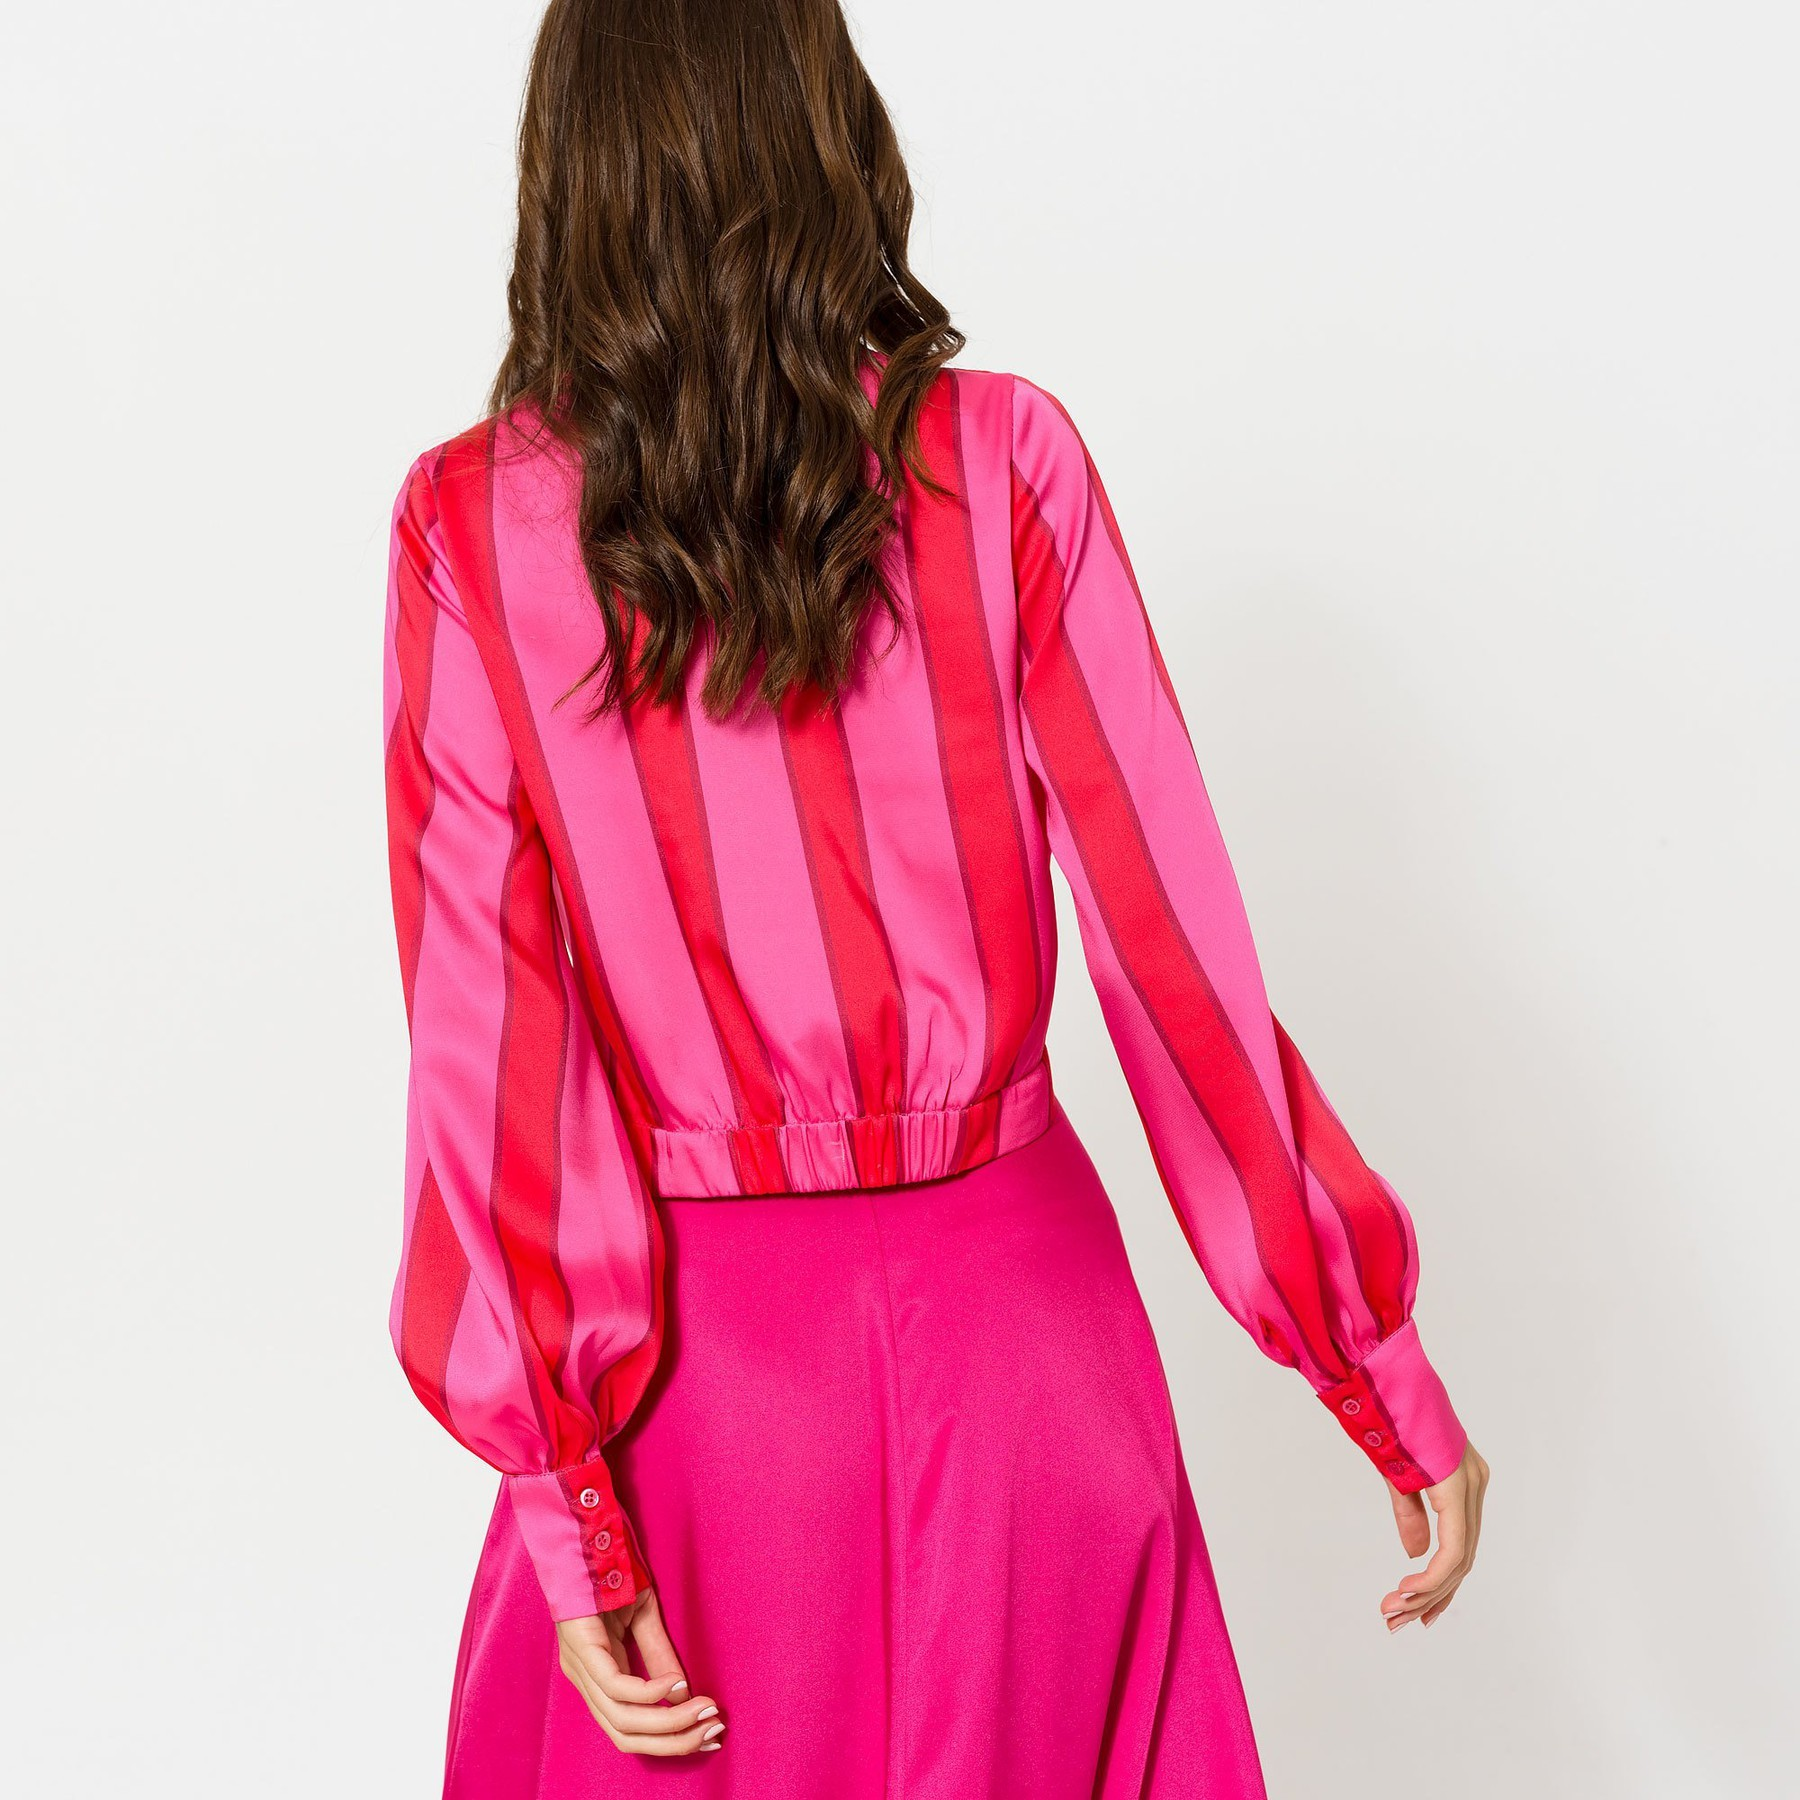 Red and Pink Striped Vneck top